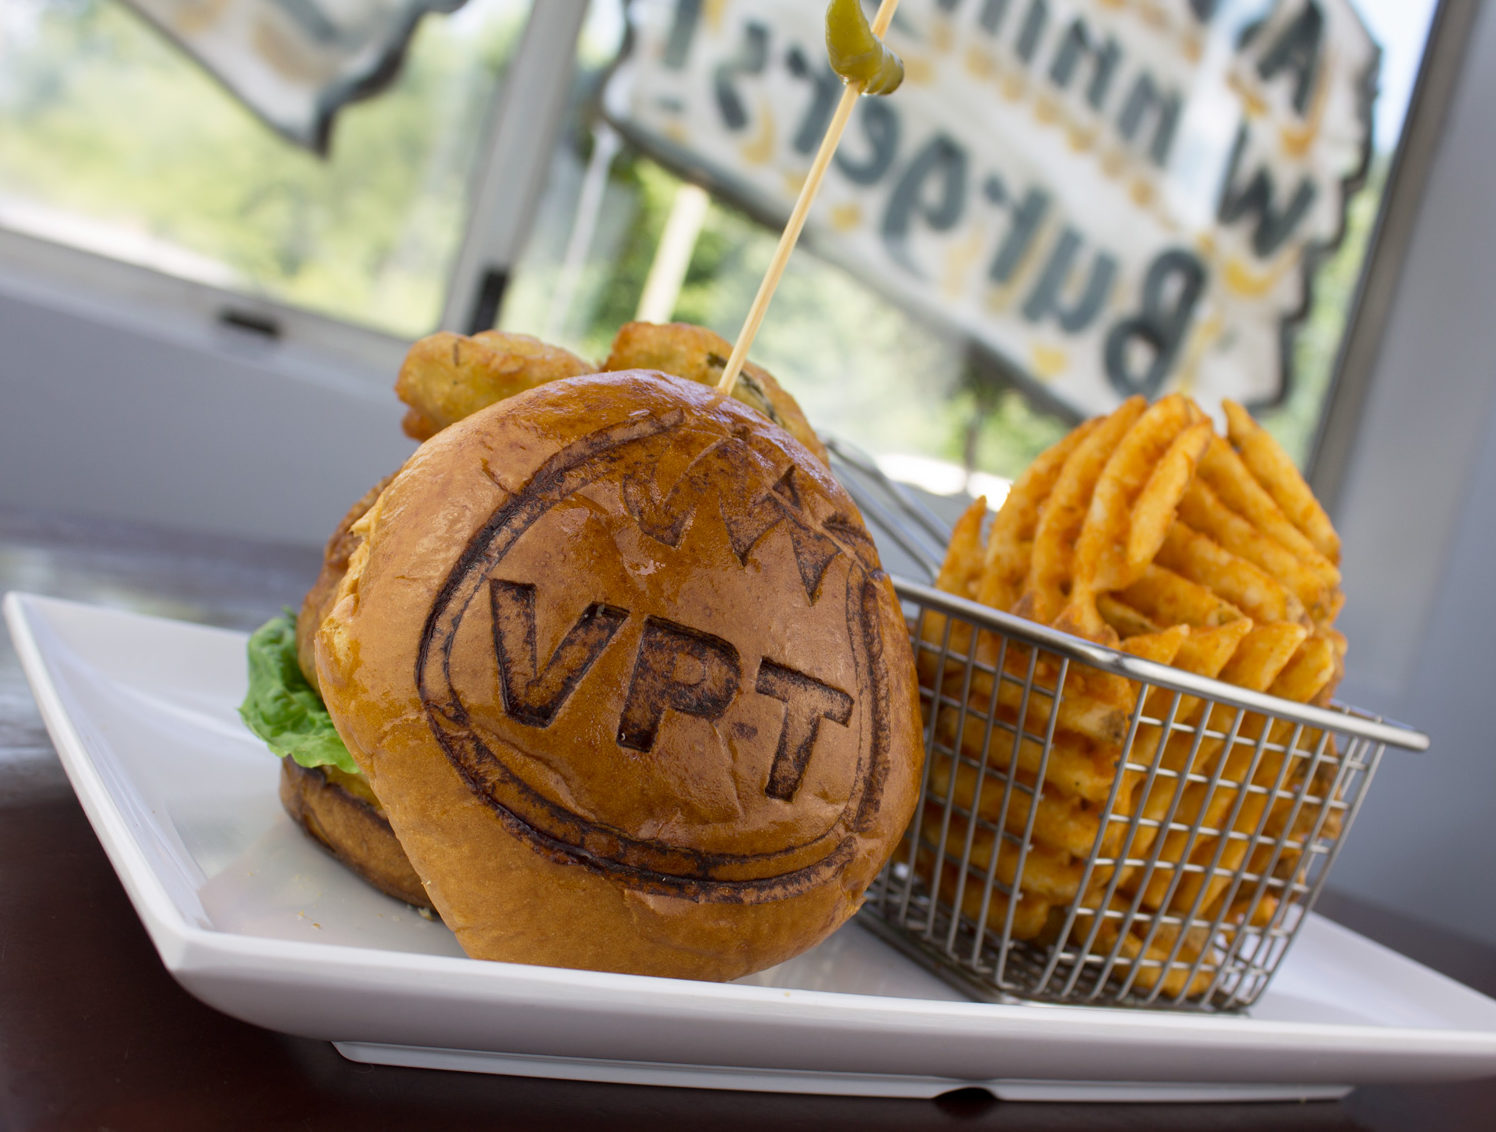 Product Marketing & Professional Photography - Blackhawk Burger by VPT Chicago Restaurant